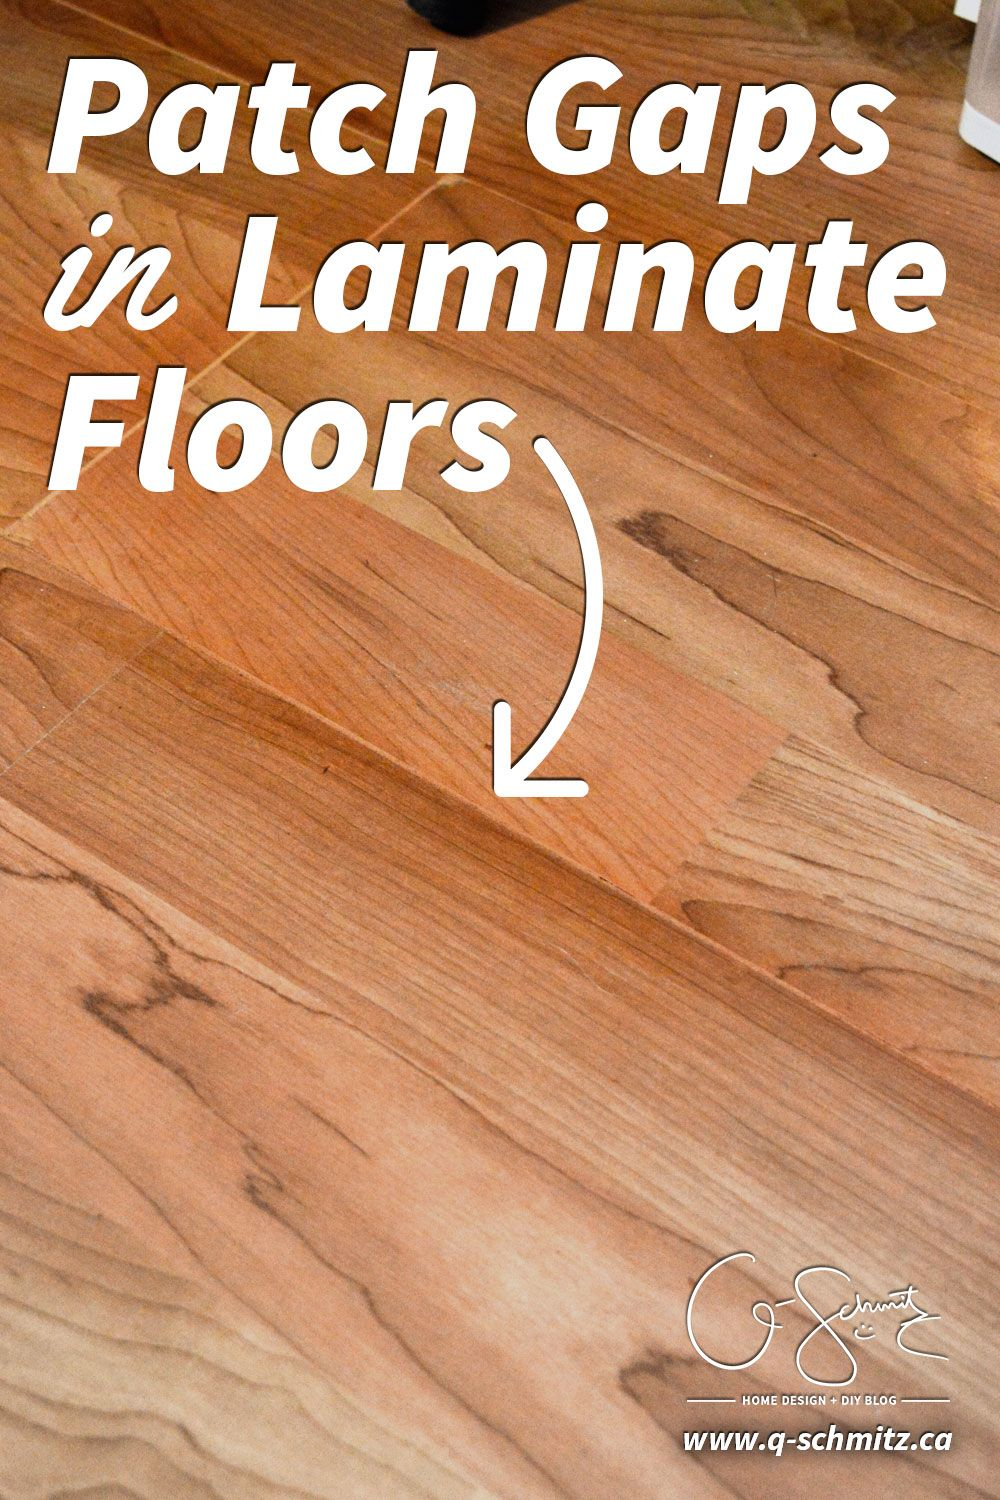 How To Patch Gaps In Laminate Floors When You Have Removed A Wall Or Want Join Two Sections Of Flooring Together And Can T Snap